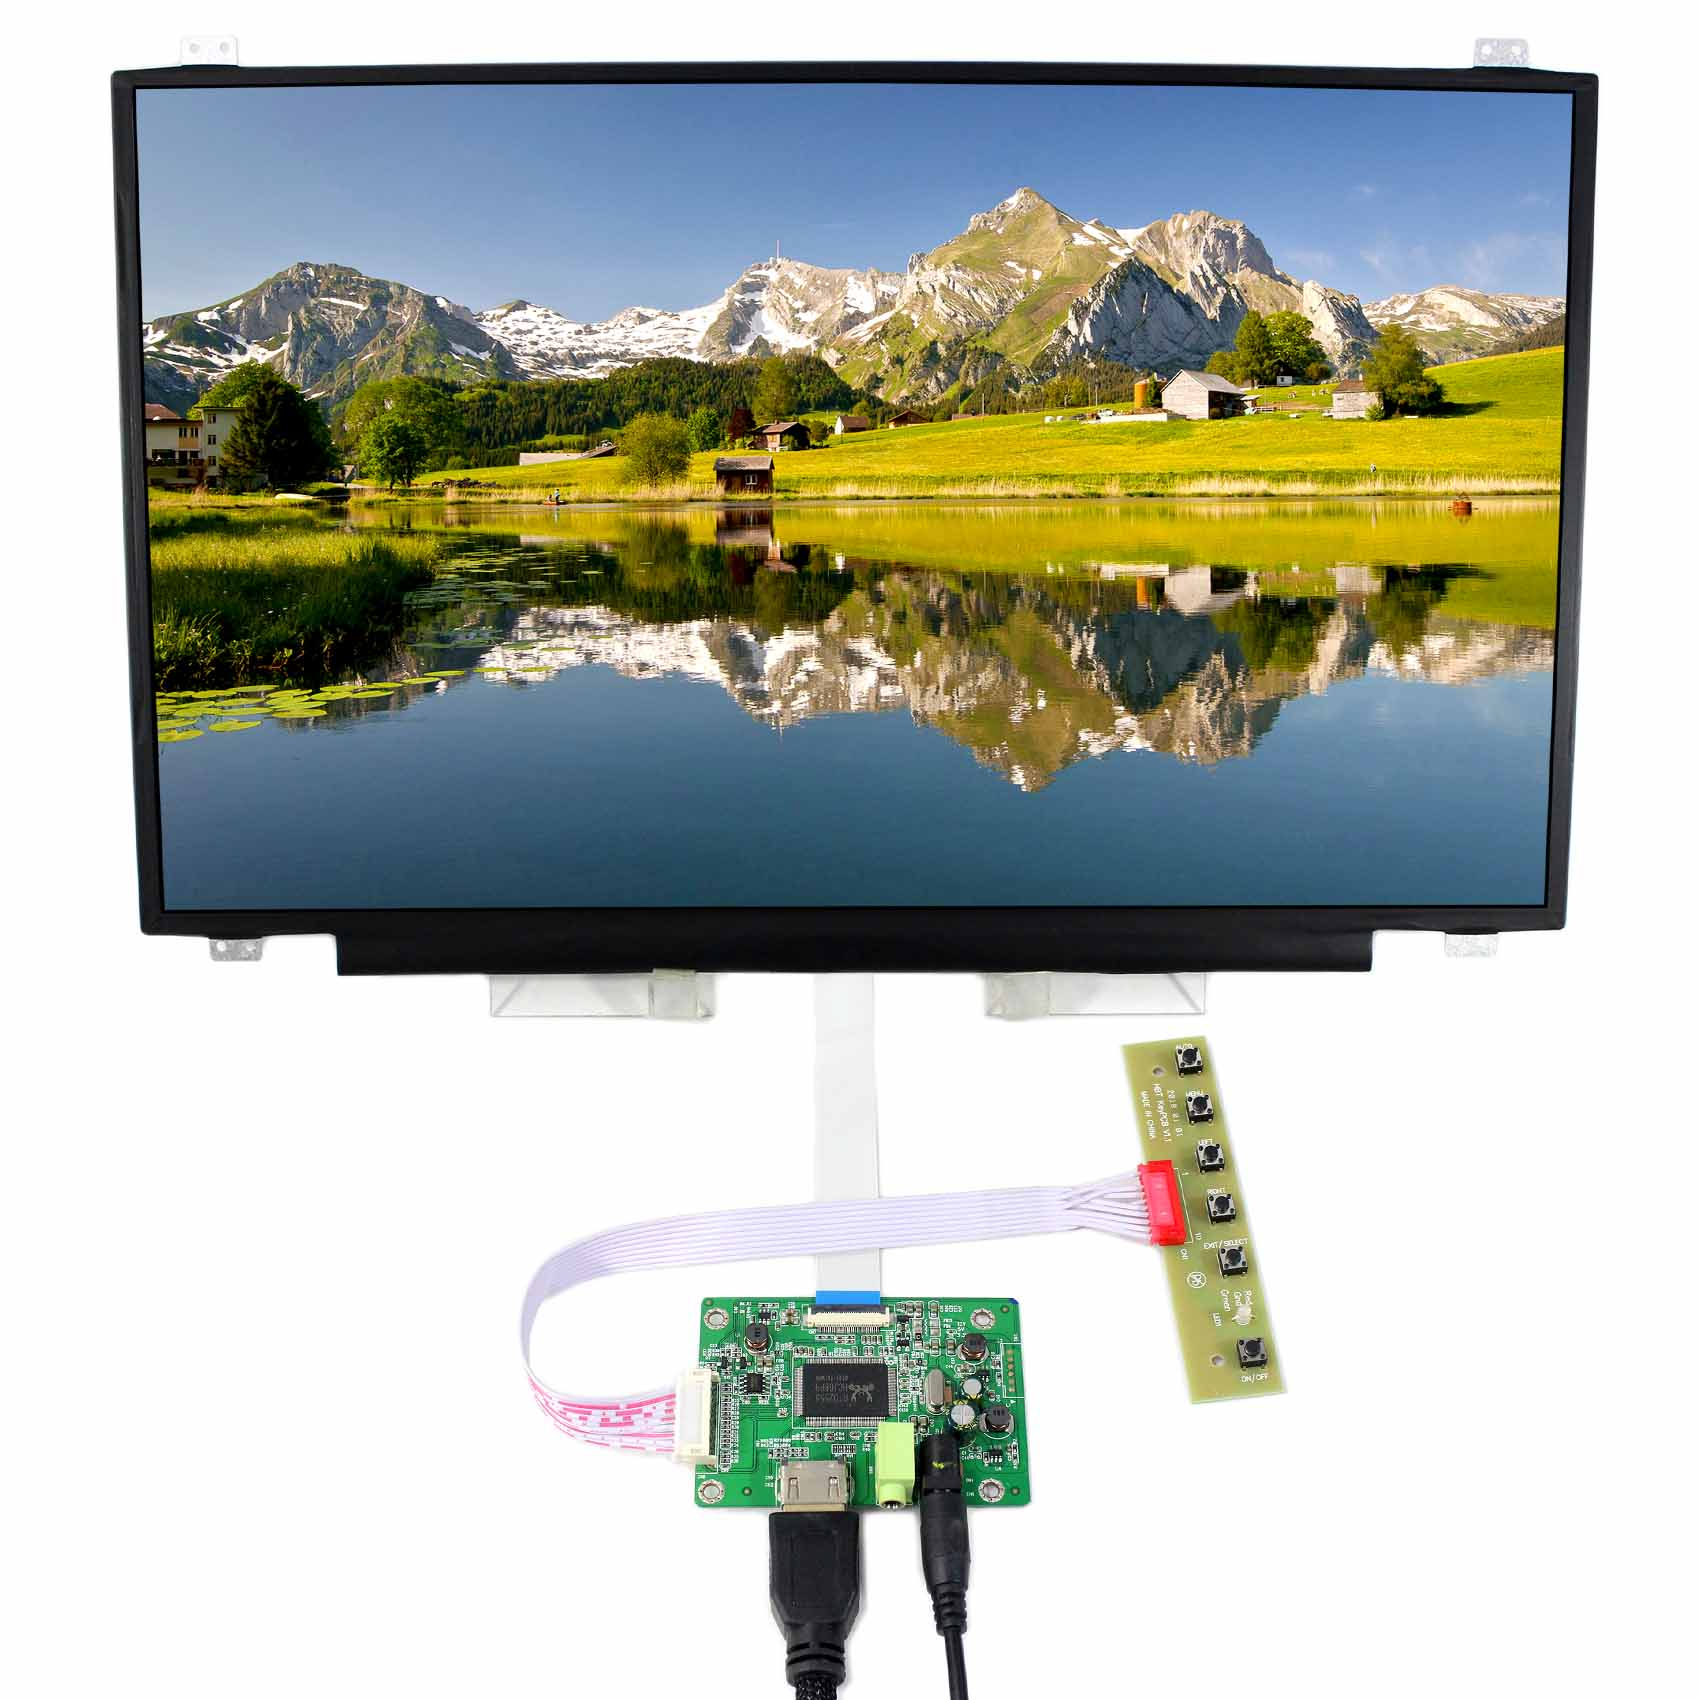 HDMI LCD Controller Board VS-RTD2556H-V1 with 17.3inch N173HCE-E31 1920x1080 EDP IPS LCD Screen HDMI LCD Controller Board VS-RTD2556H-V1 with 17.3inch N173HCE-E31 1920x1080 EDP IPS LCD Screen